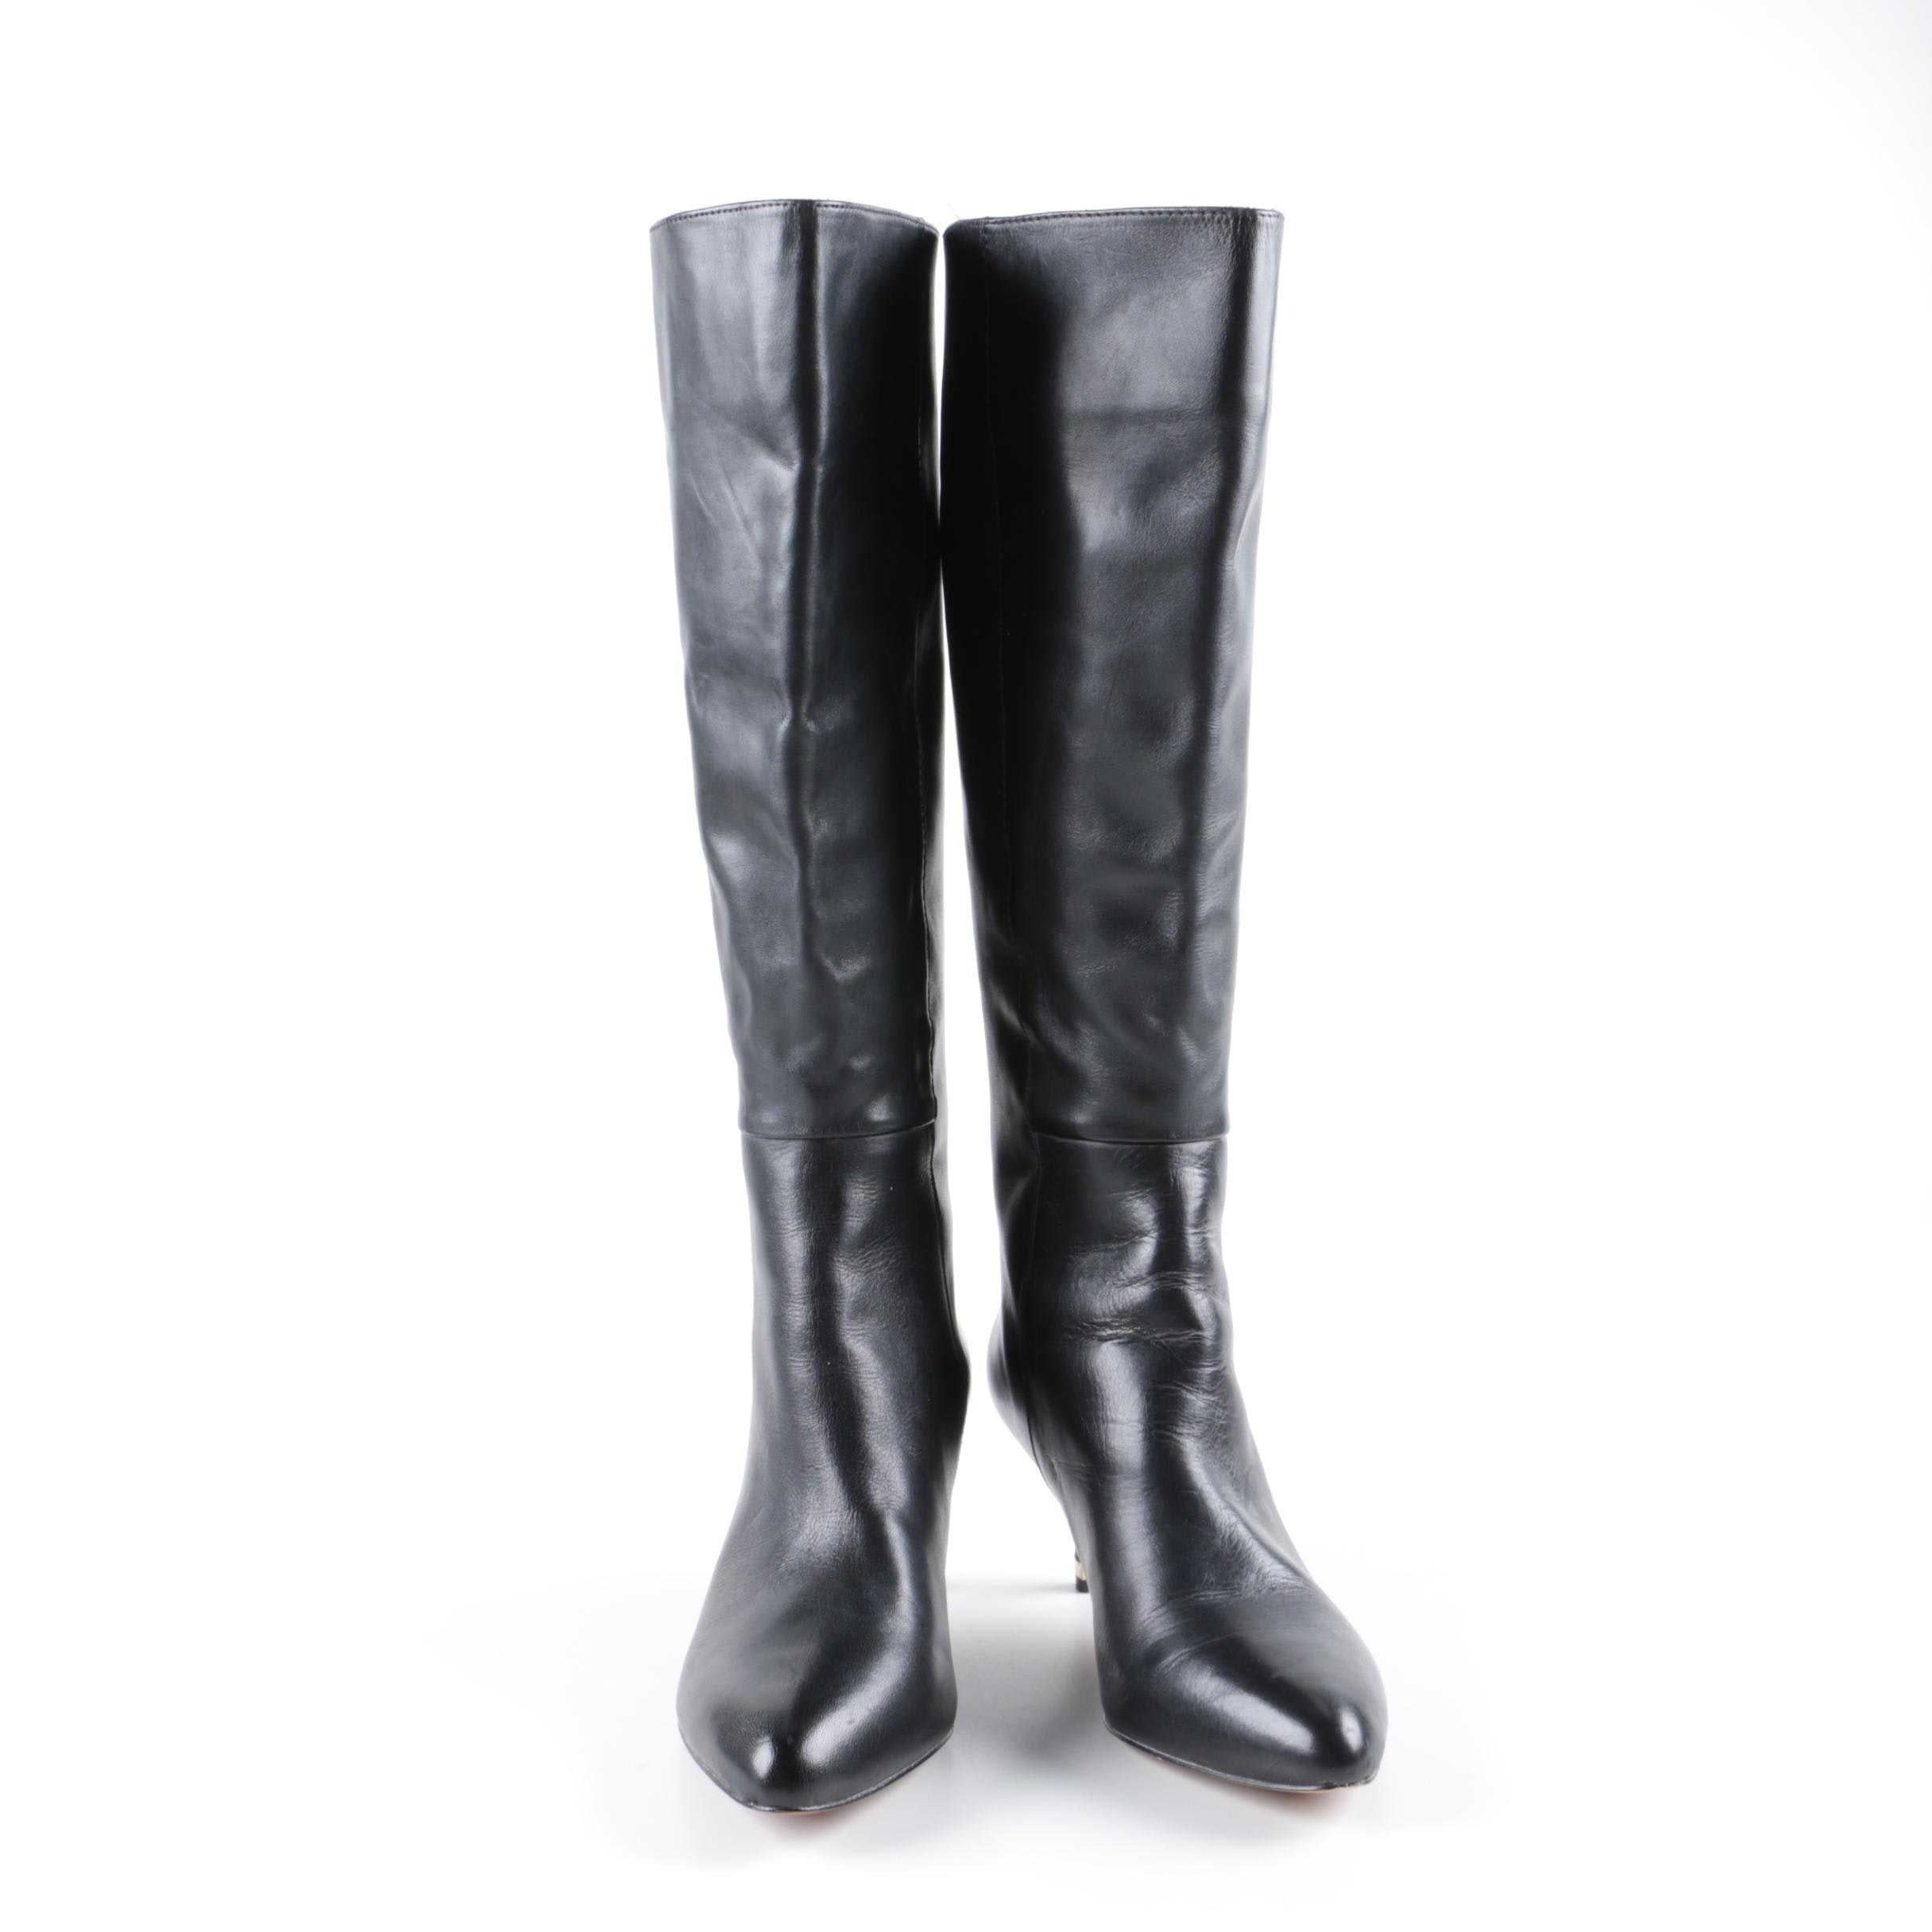 Women's Coach Fayth Black Leather High-Heeled Tall Boots